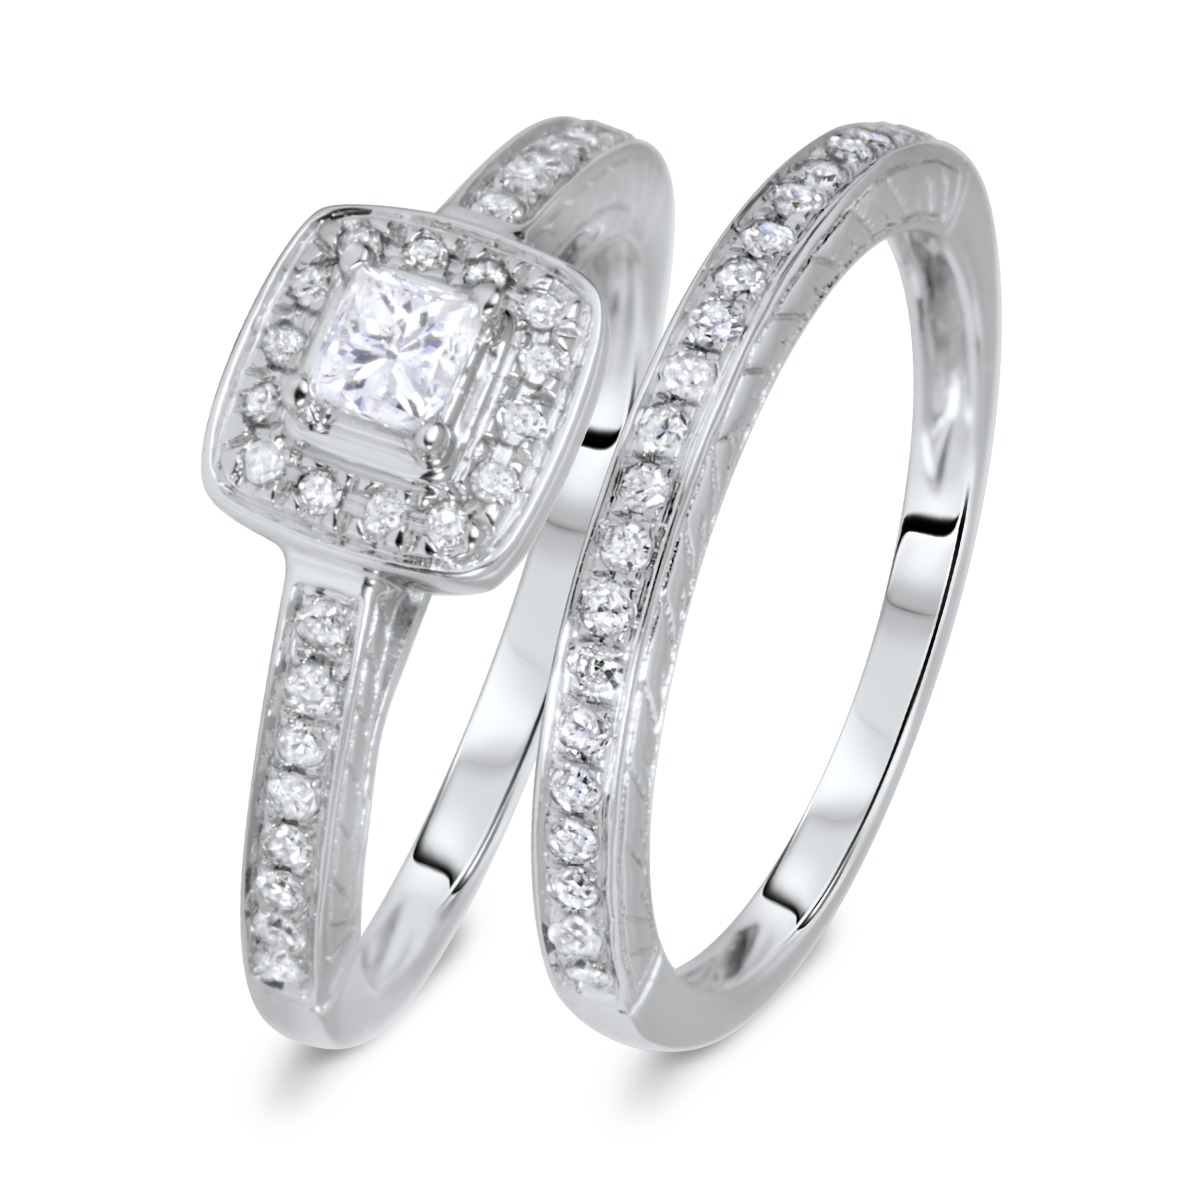 1/2 CT. T.W. Solitaire, Rounds Cut Diamond Ladies Bridal Ring Set 10K White Gold